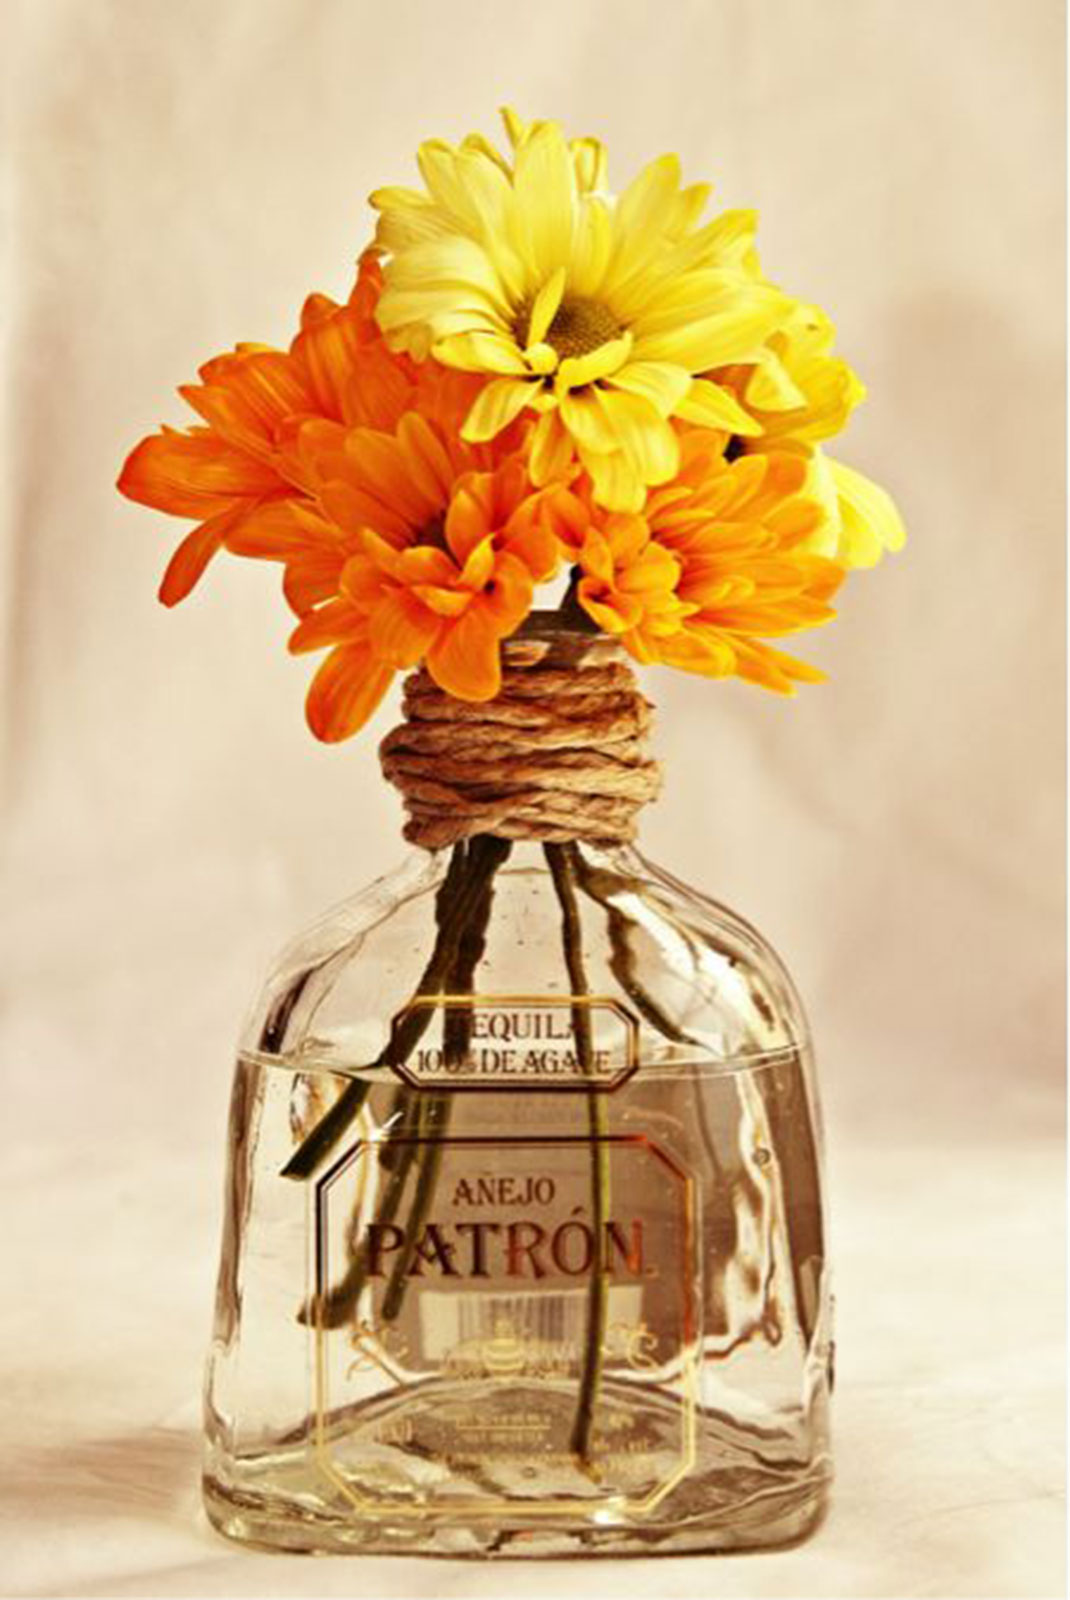 Flower Vase Decoration 29 Ideas To Help You Recycle Your Glass Bottles Cleverly